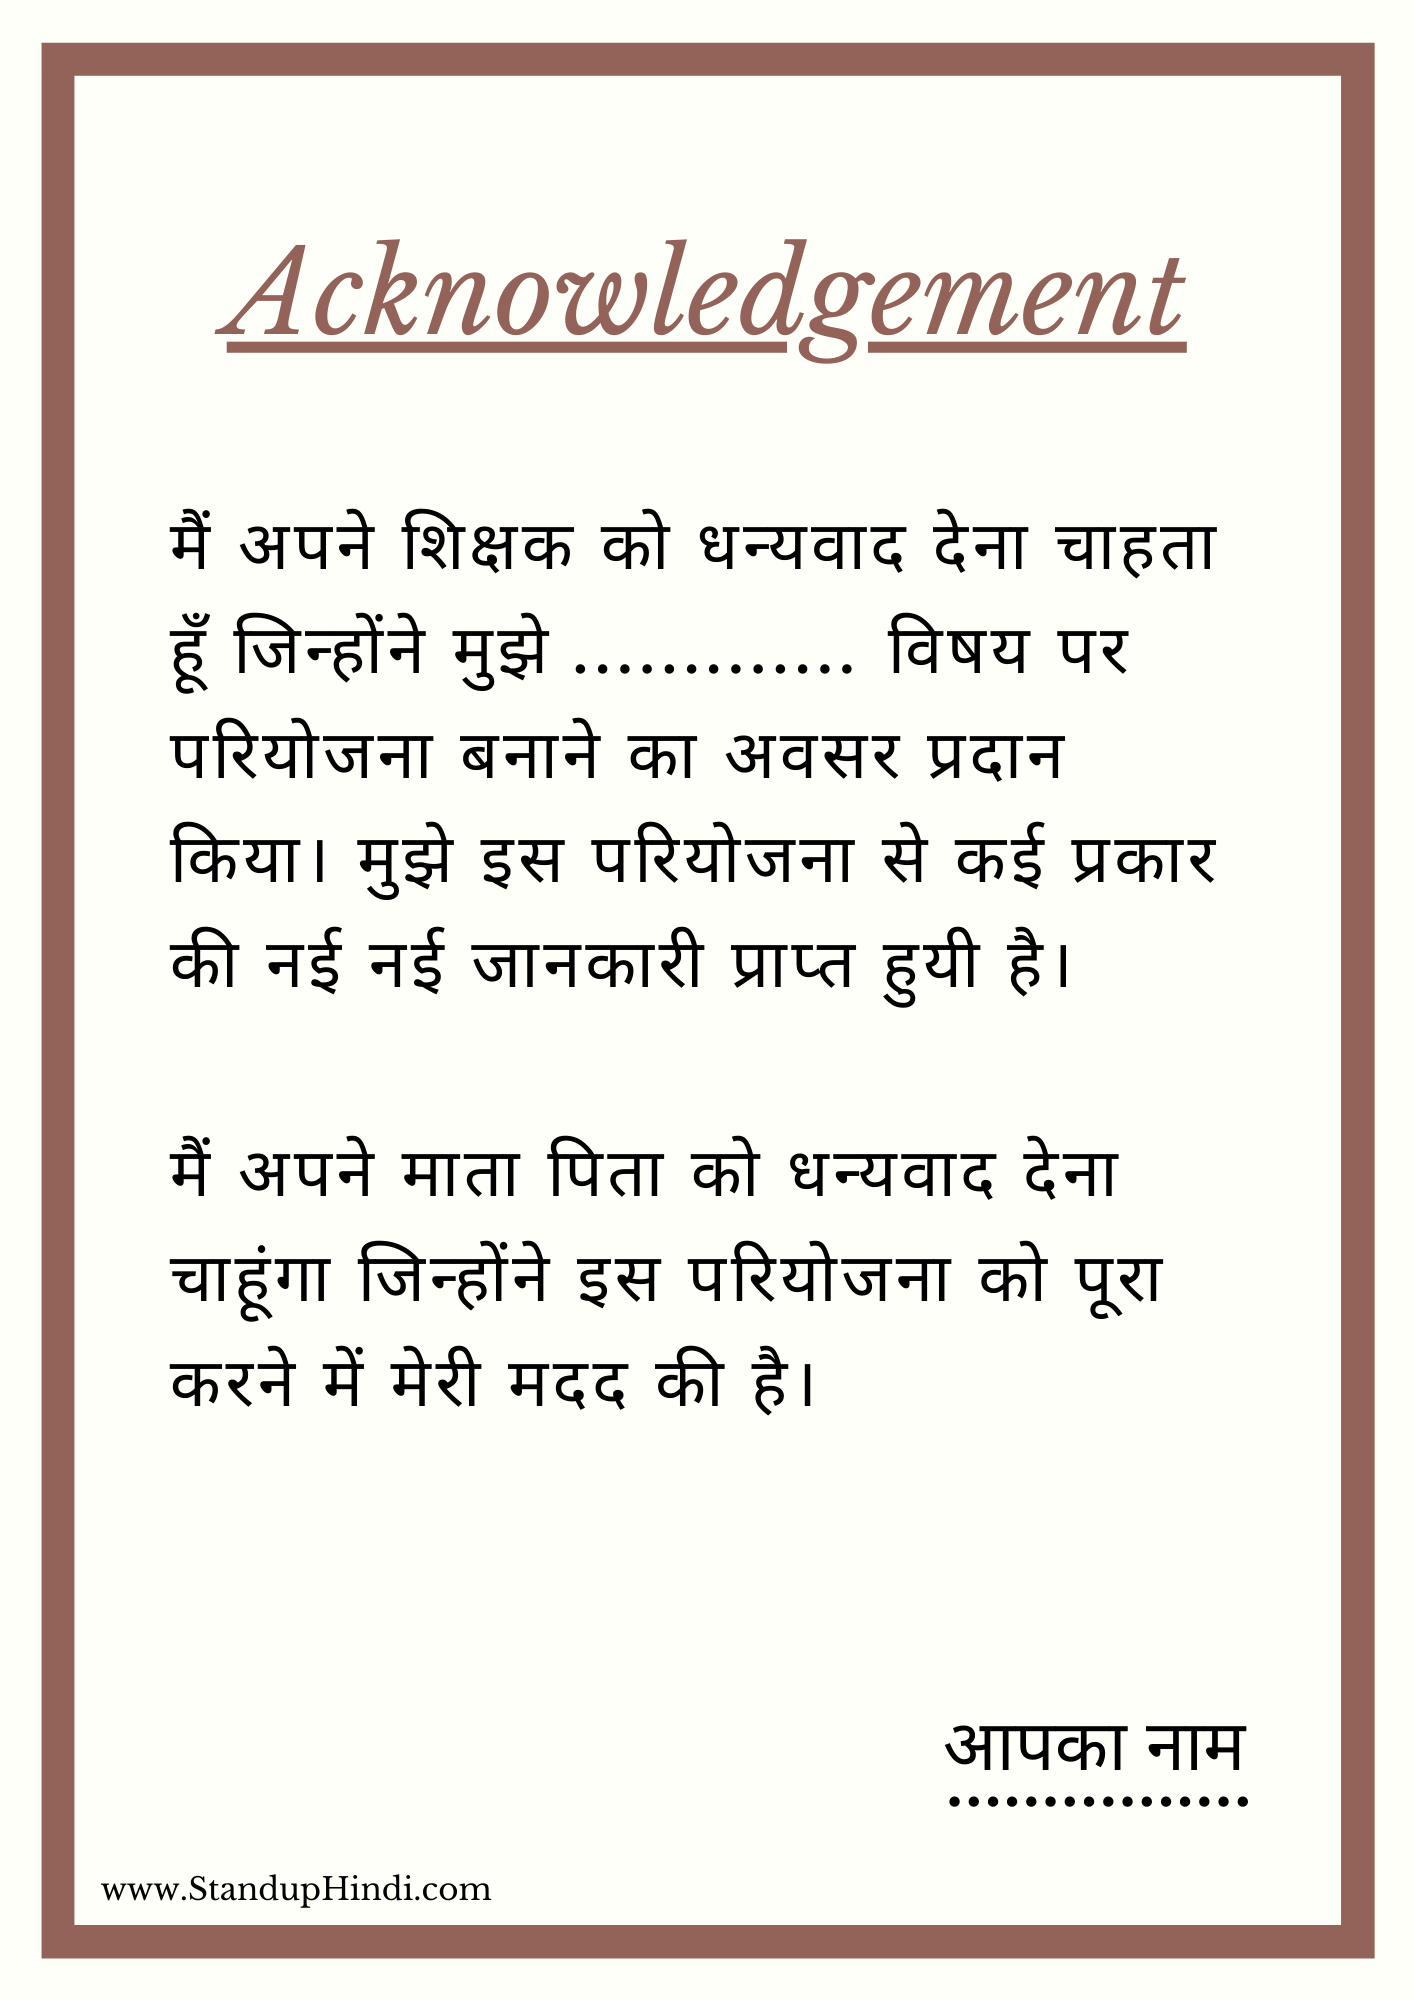 Acknowledgement for project in Hindi